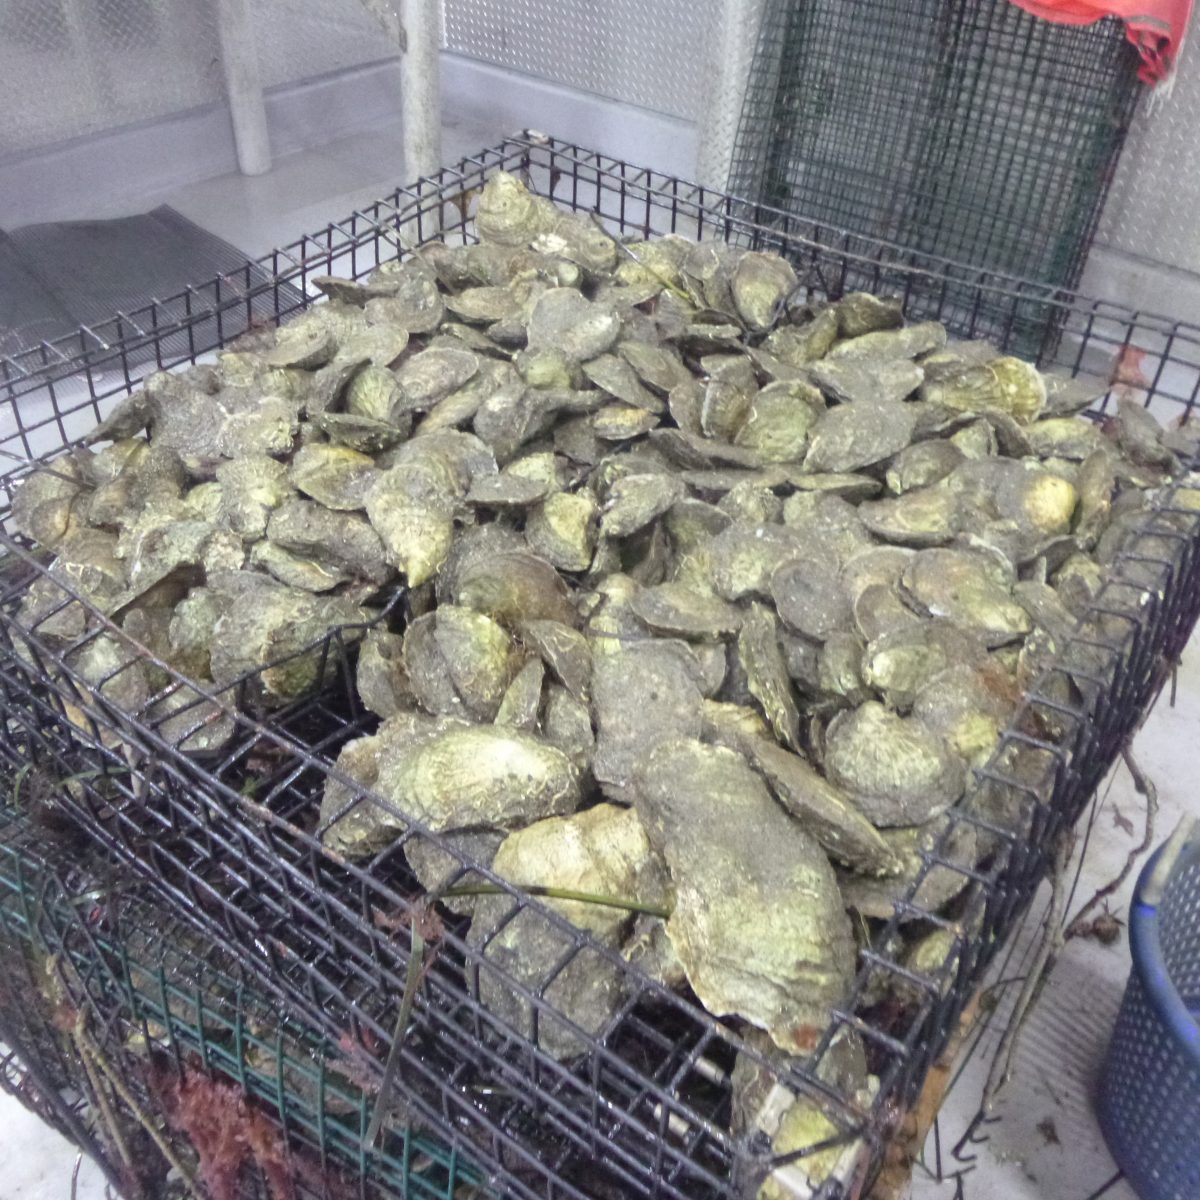 Freshly harvested oysters await packing and delivery in a refrigeration room at the Noank Aquaculture Cooperative.